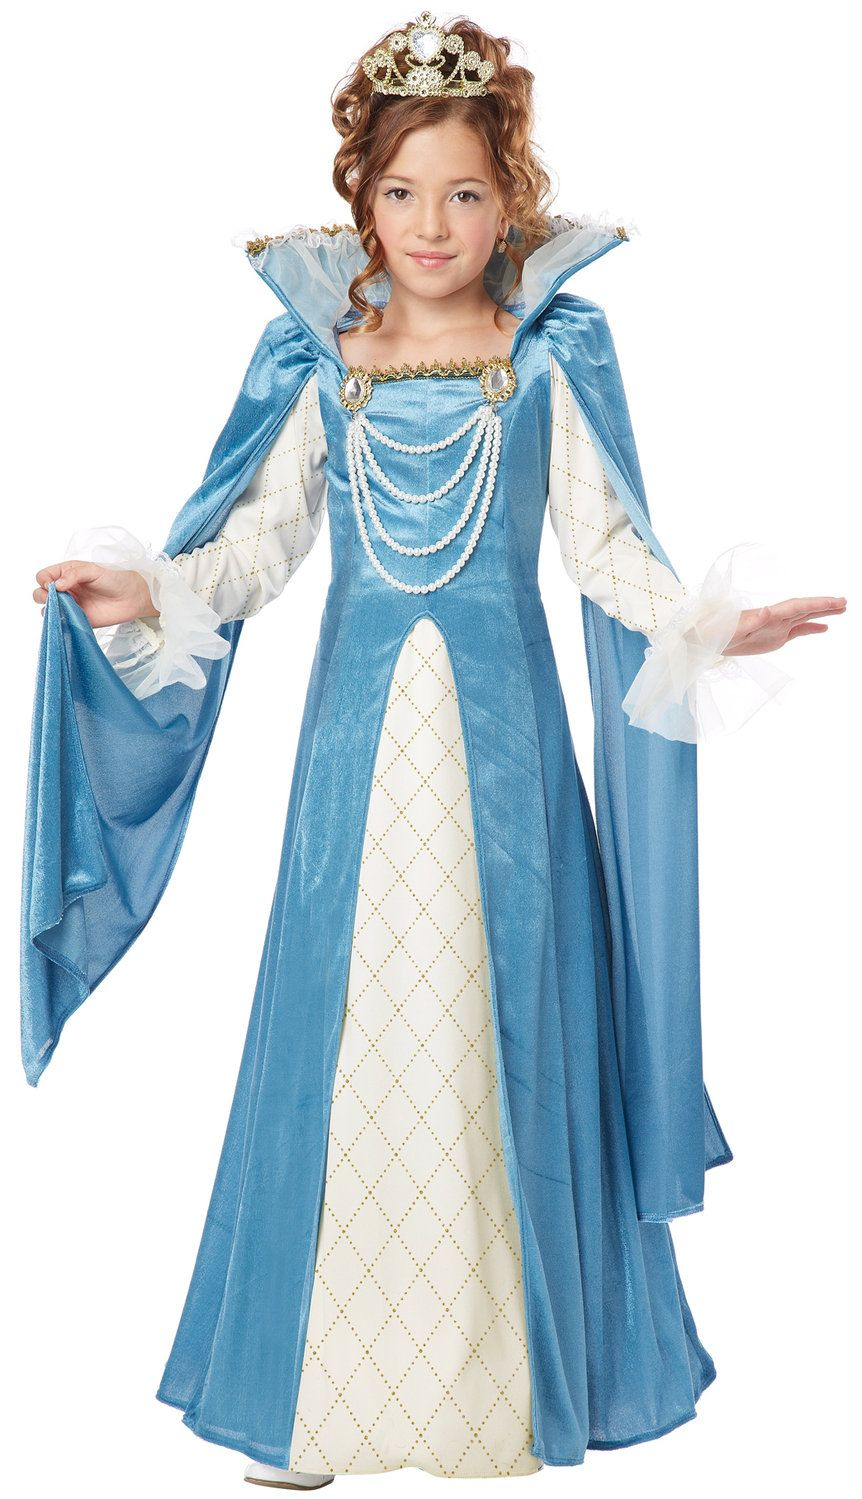 Homemade Halloween Costumes For Girls Age 10 12 Home Queen  sc 1 st  Cartoonview.co & Homemade Halloween Costumes For Kids Girl | Cartoonview.co